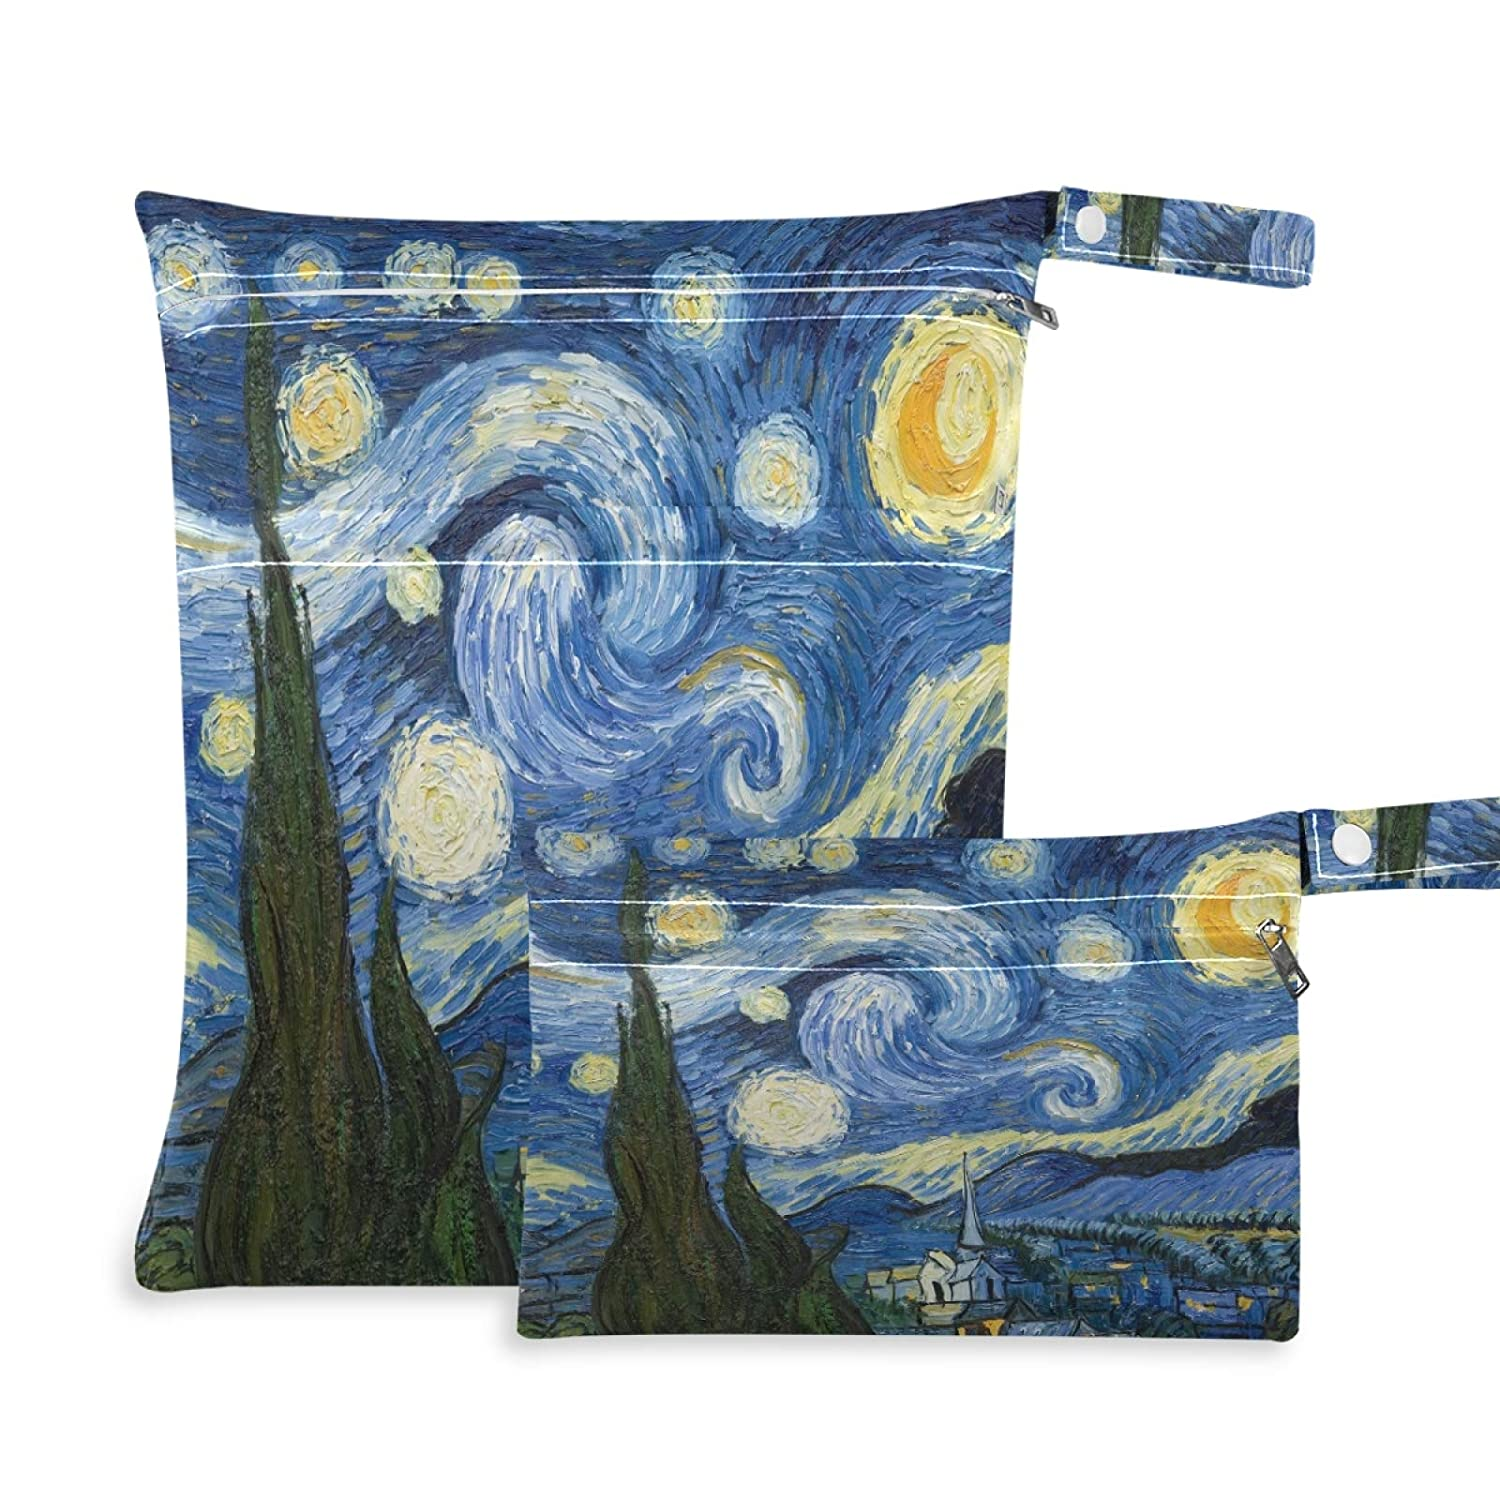 Qilmy 2pcs Starry Night Wet Dry Bag Waterproof Reusable Baby Cloth Diaper Wet Dry Organizer for Travel, Beach, Stroller, Diapers, Wet Swimsuits, Toiletries,